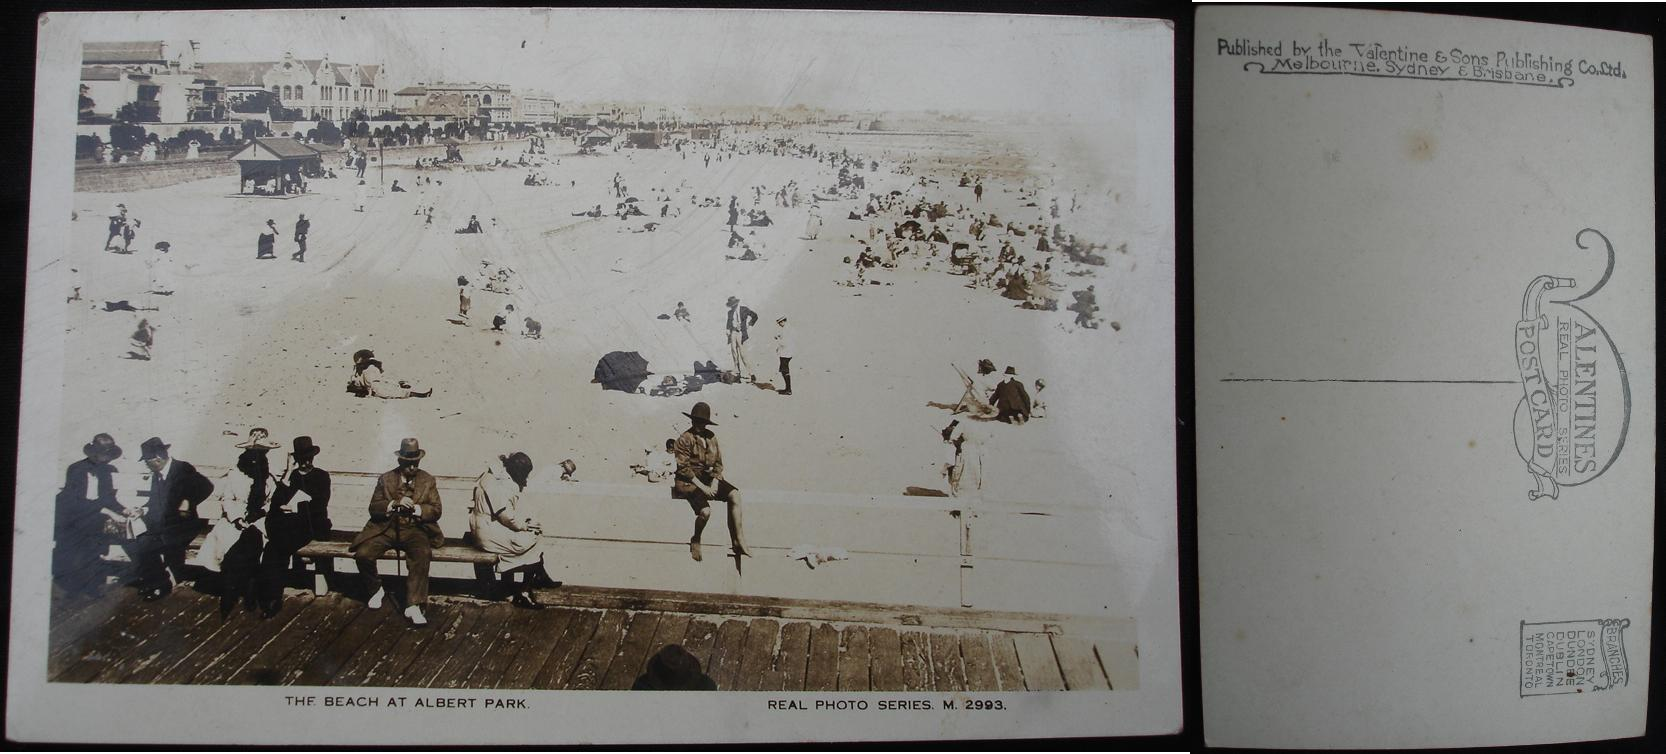 Real Photo Postcard - The Beach at Albert Park, Melbourne, Australia - click for larger image in new window